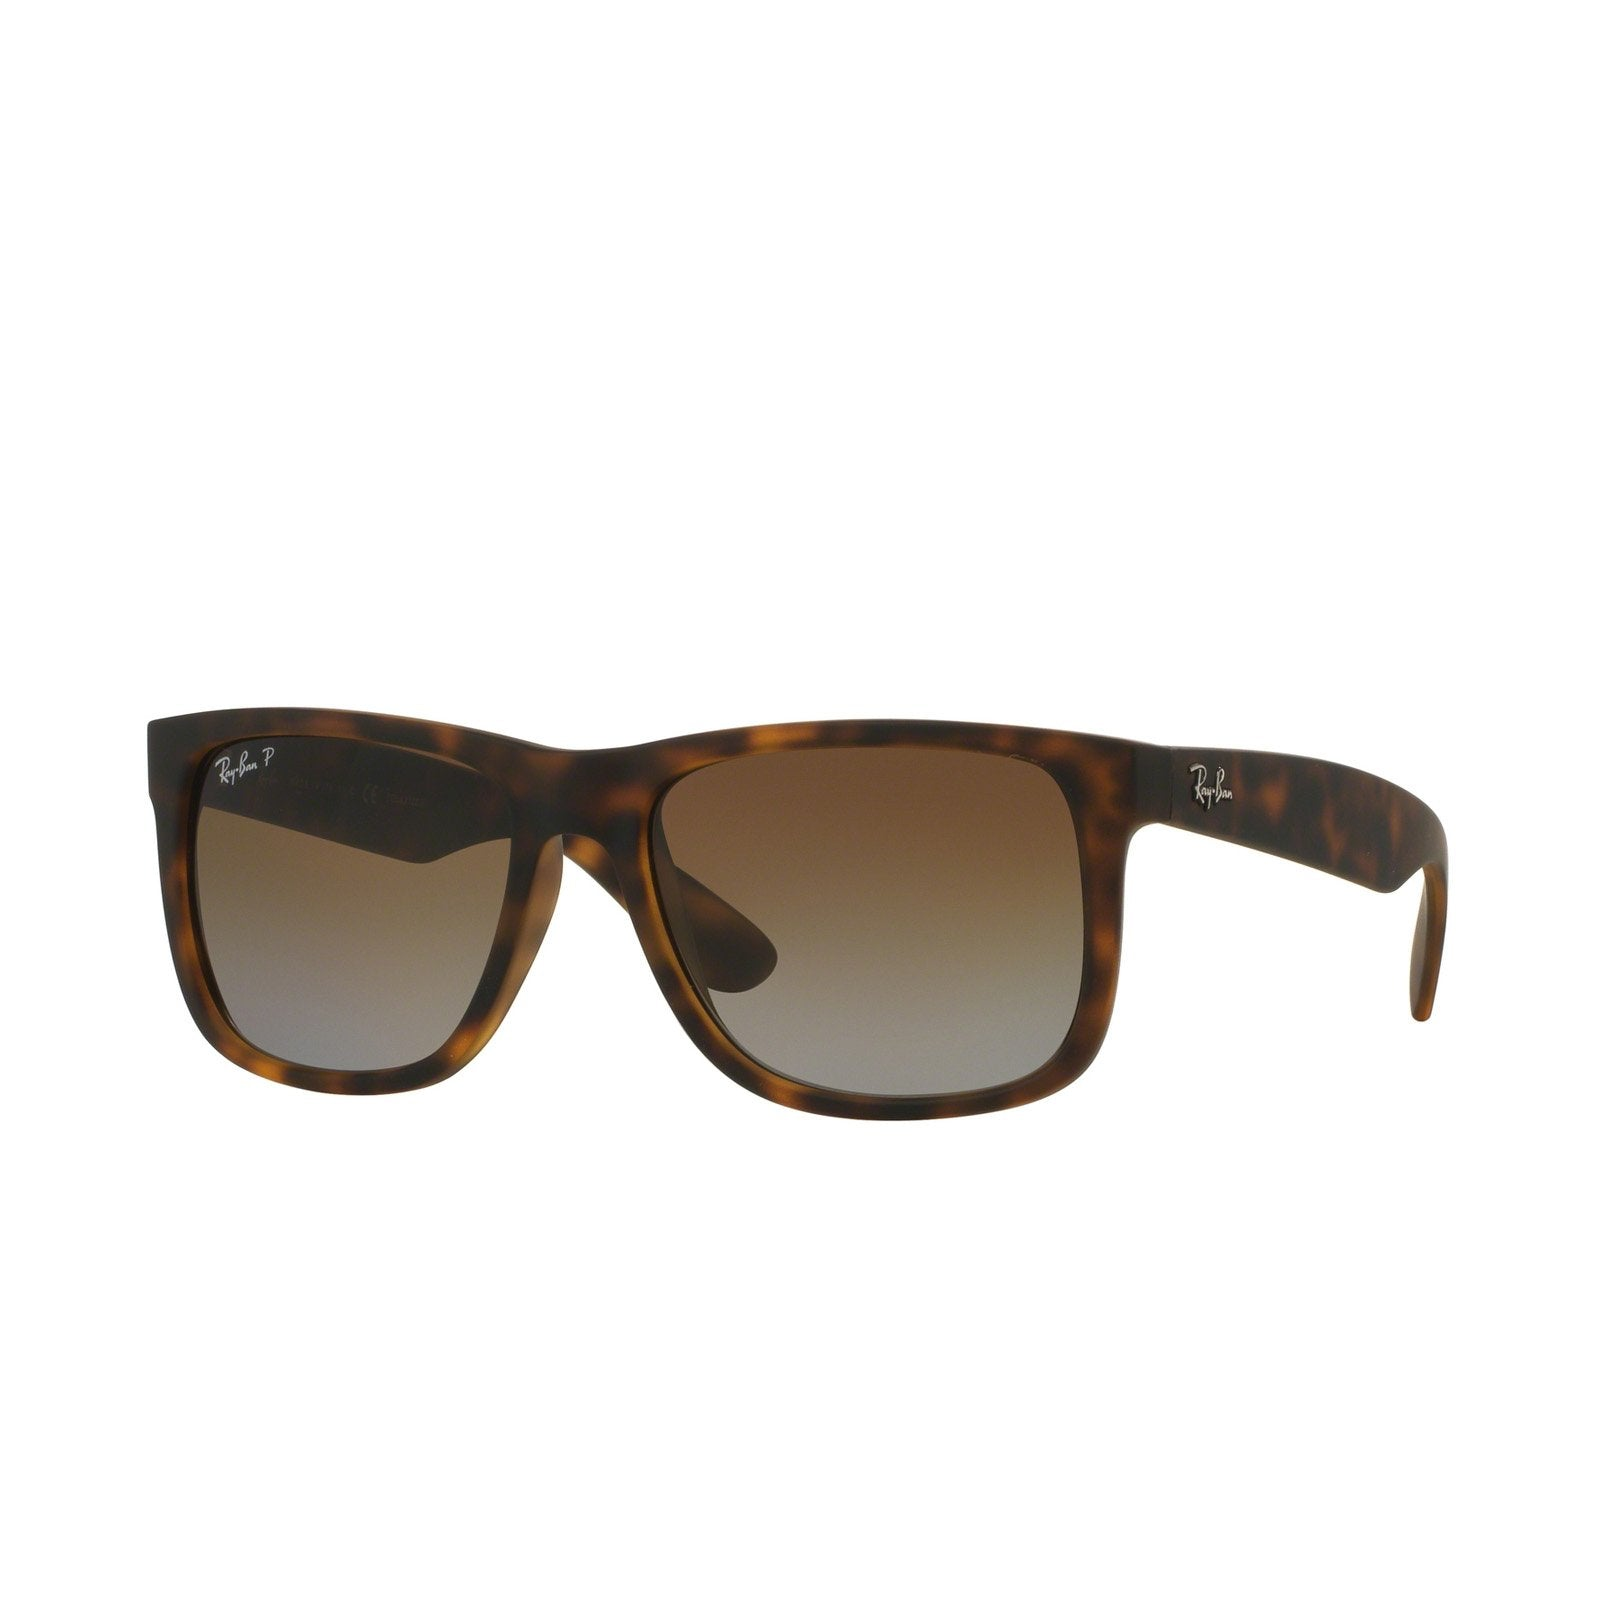 Ray-Ban RB4165 865/T5 Sunglasses